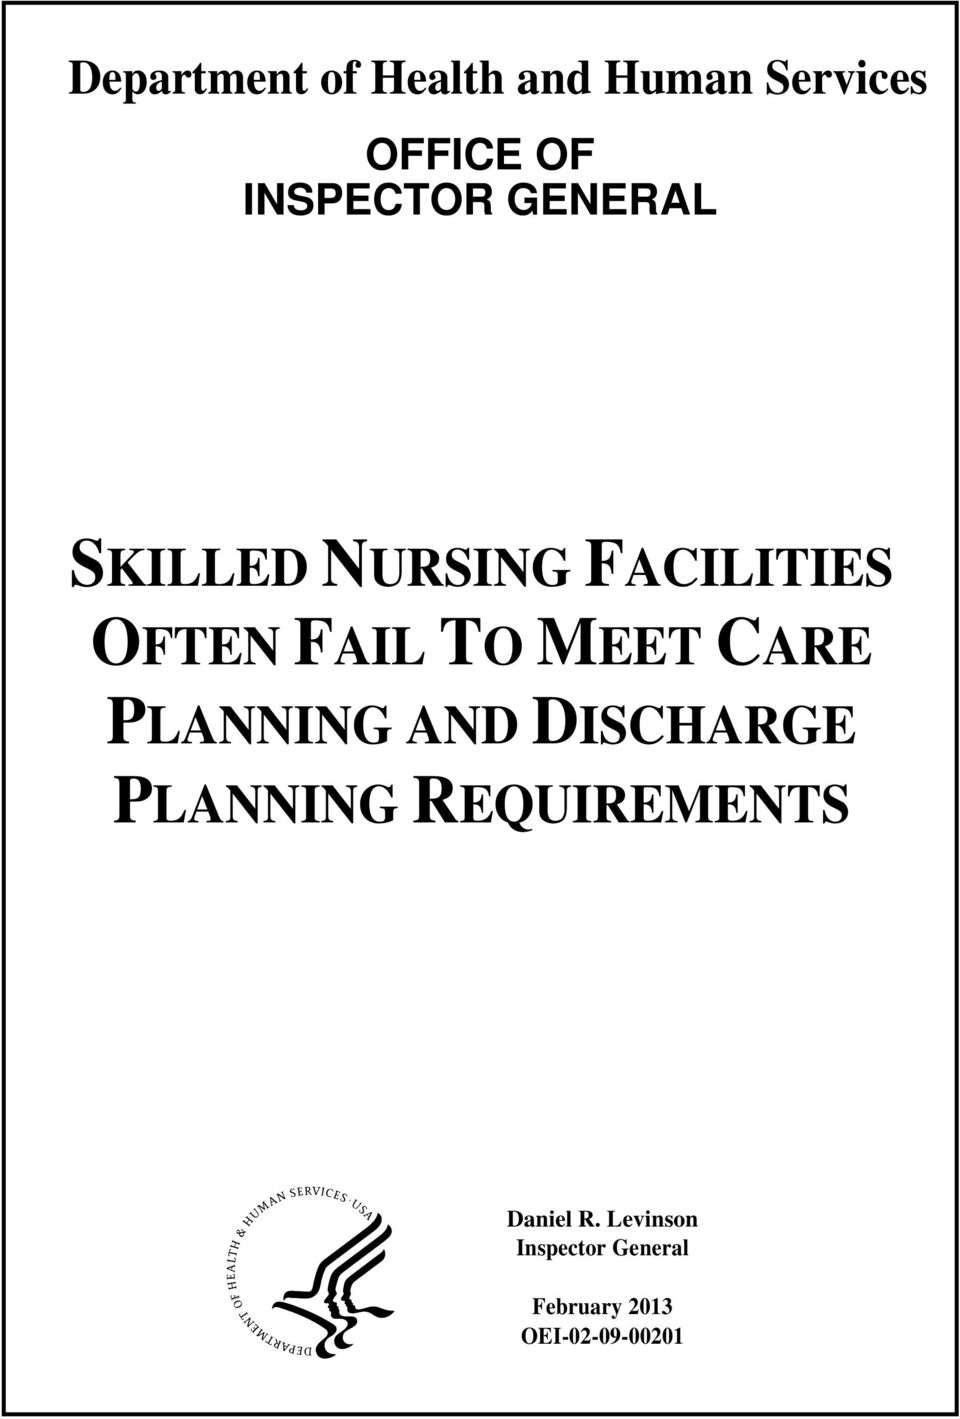 TO MEET CARE PLANNING AND DISCHARGE PLANNING REQUIREMENTS